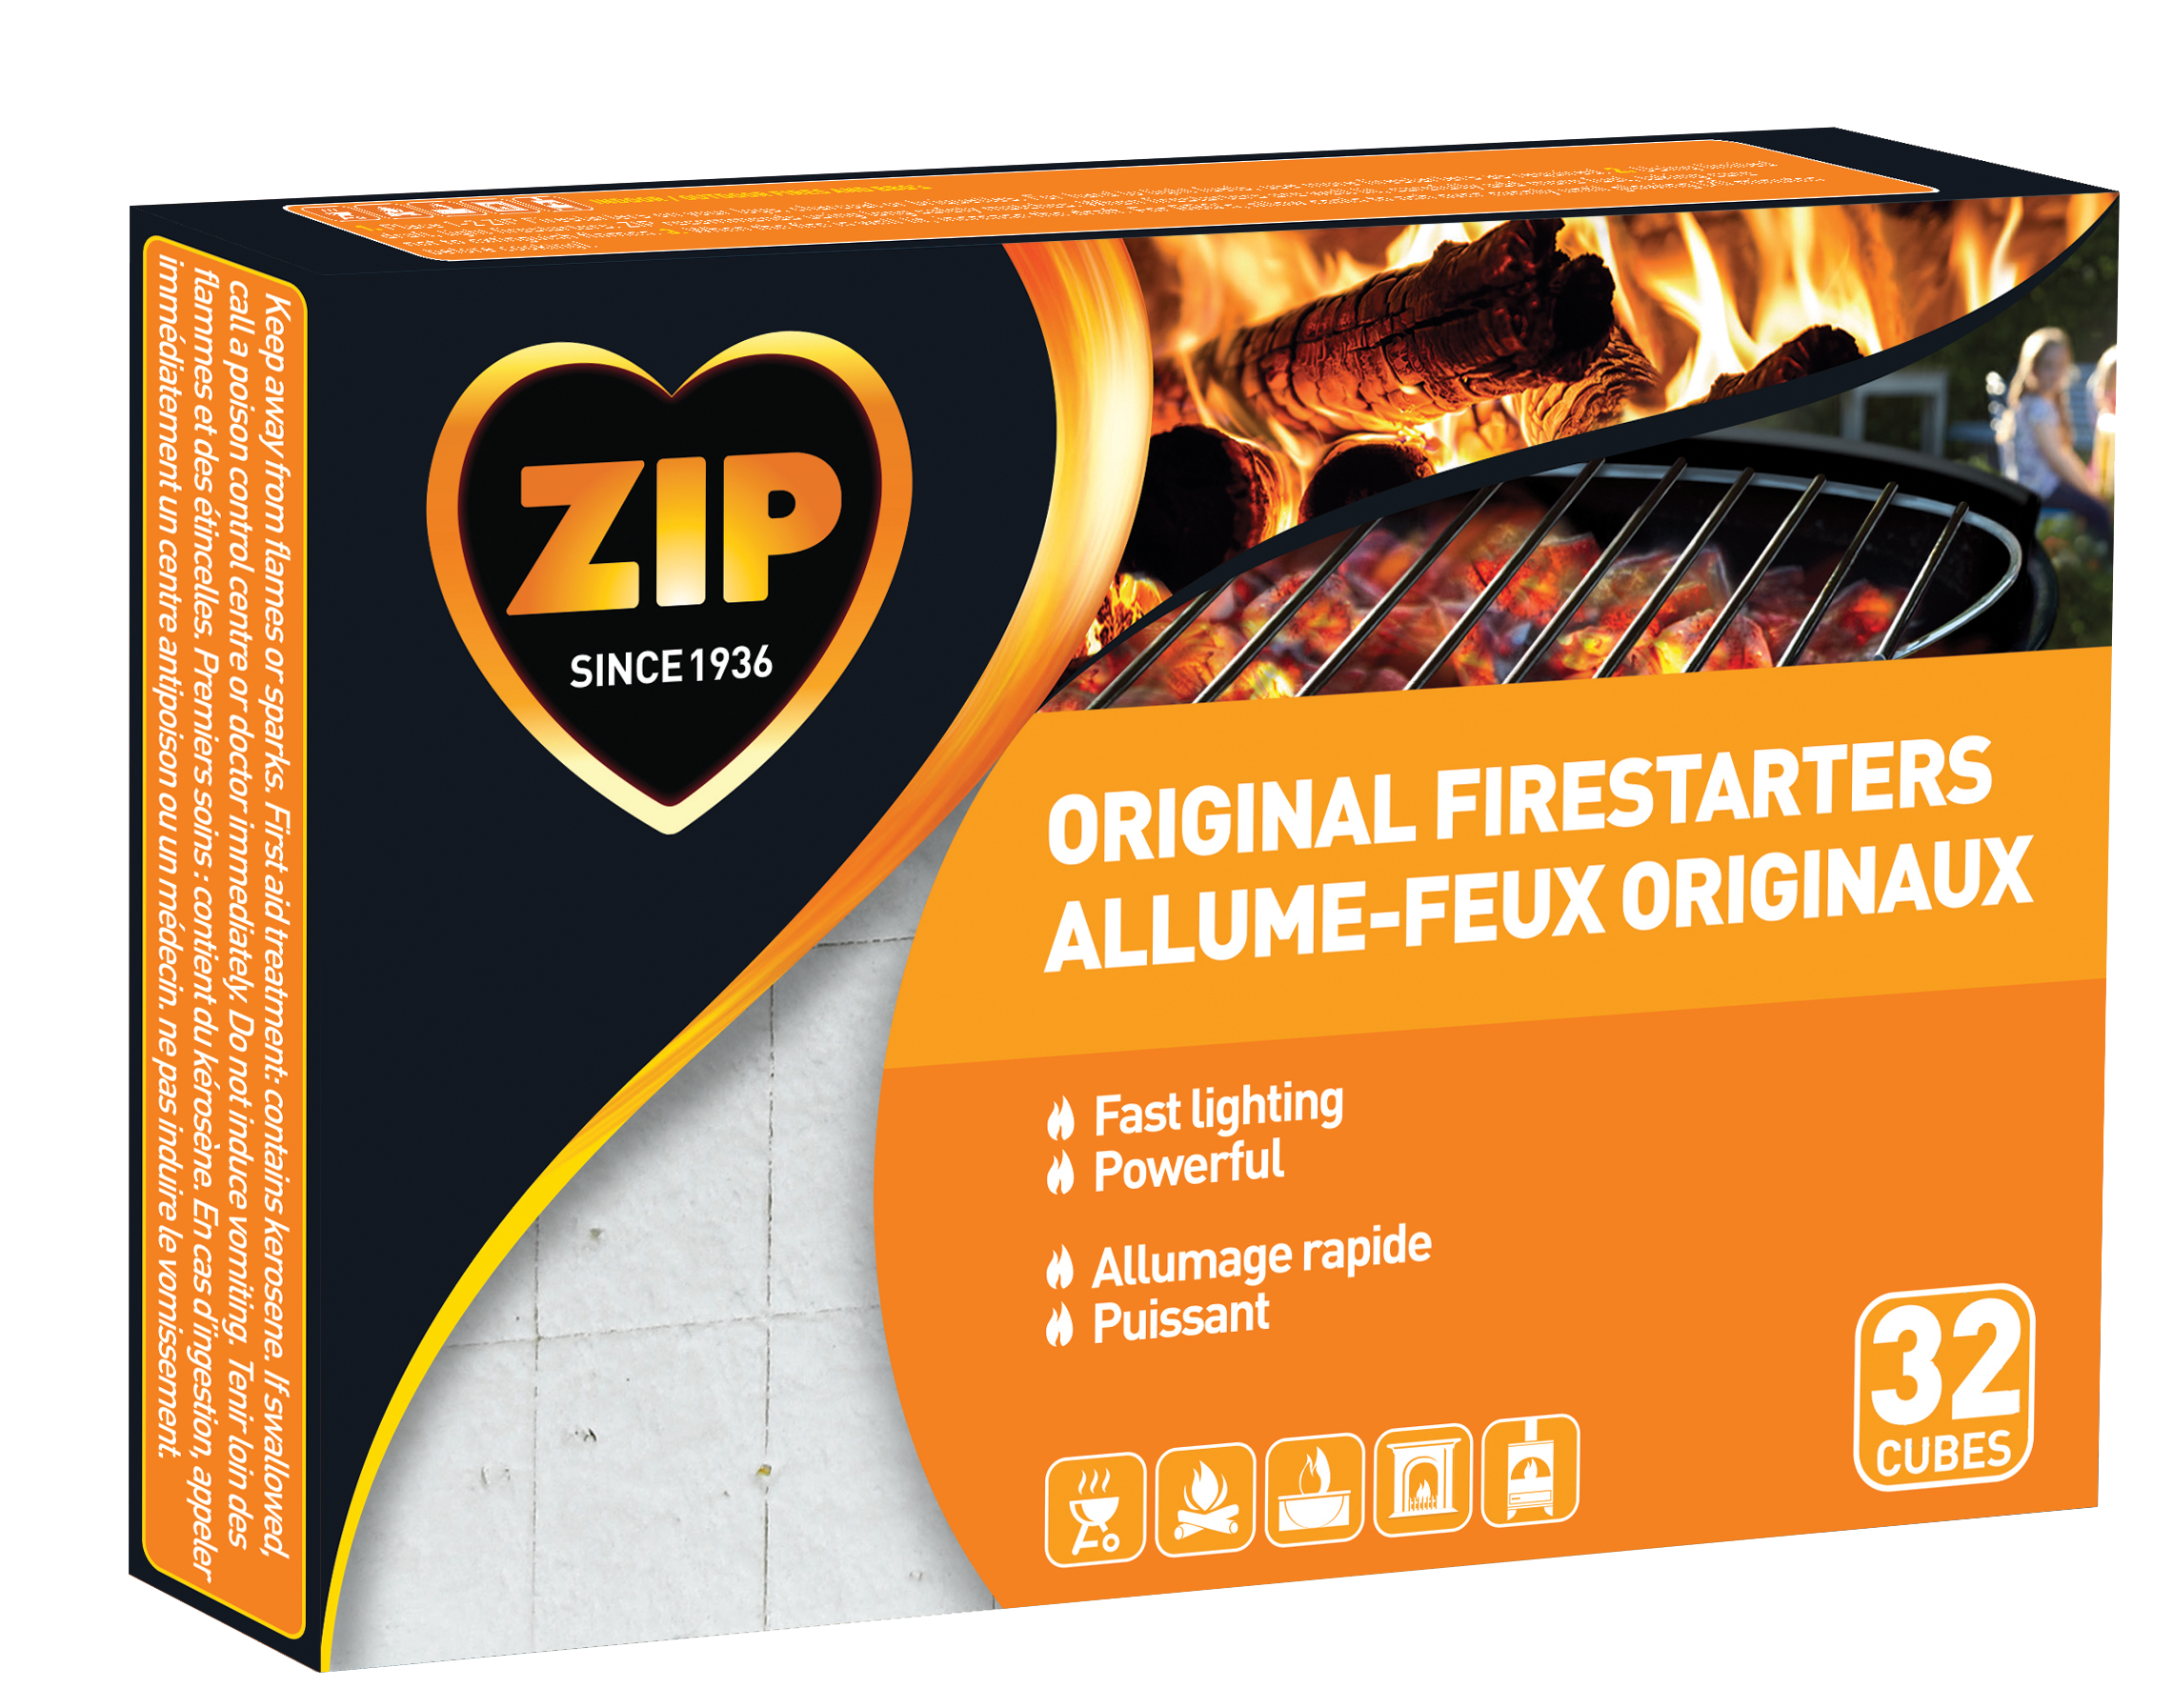 Zip Original Firestarters